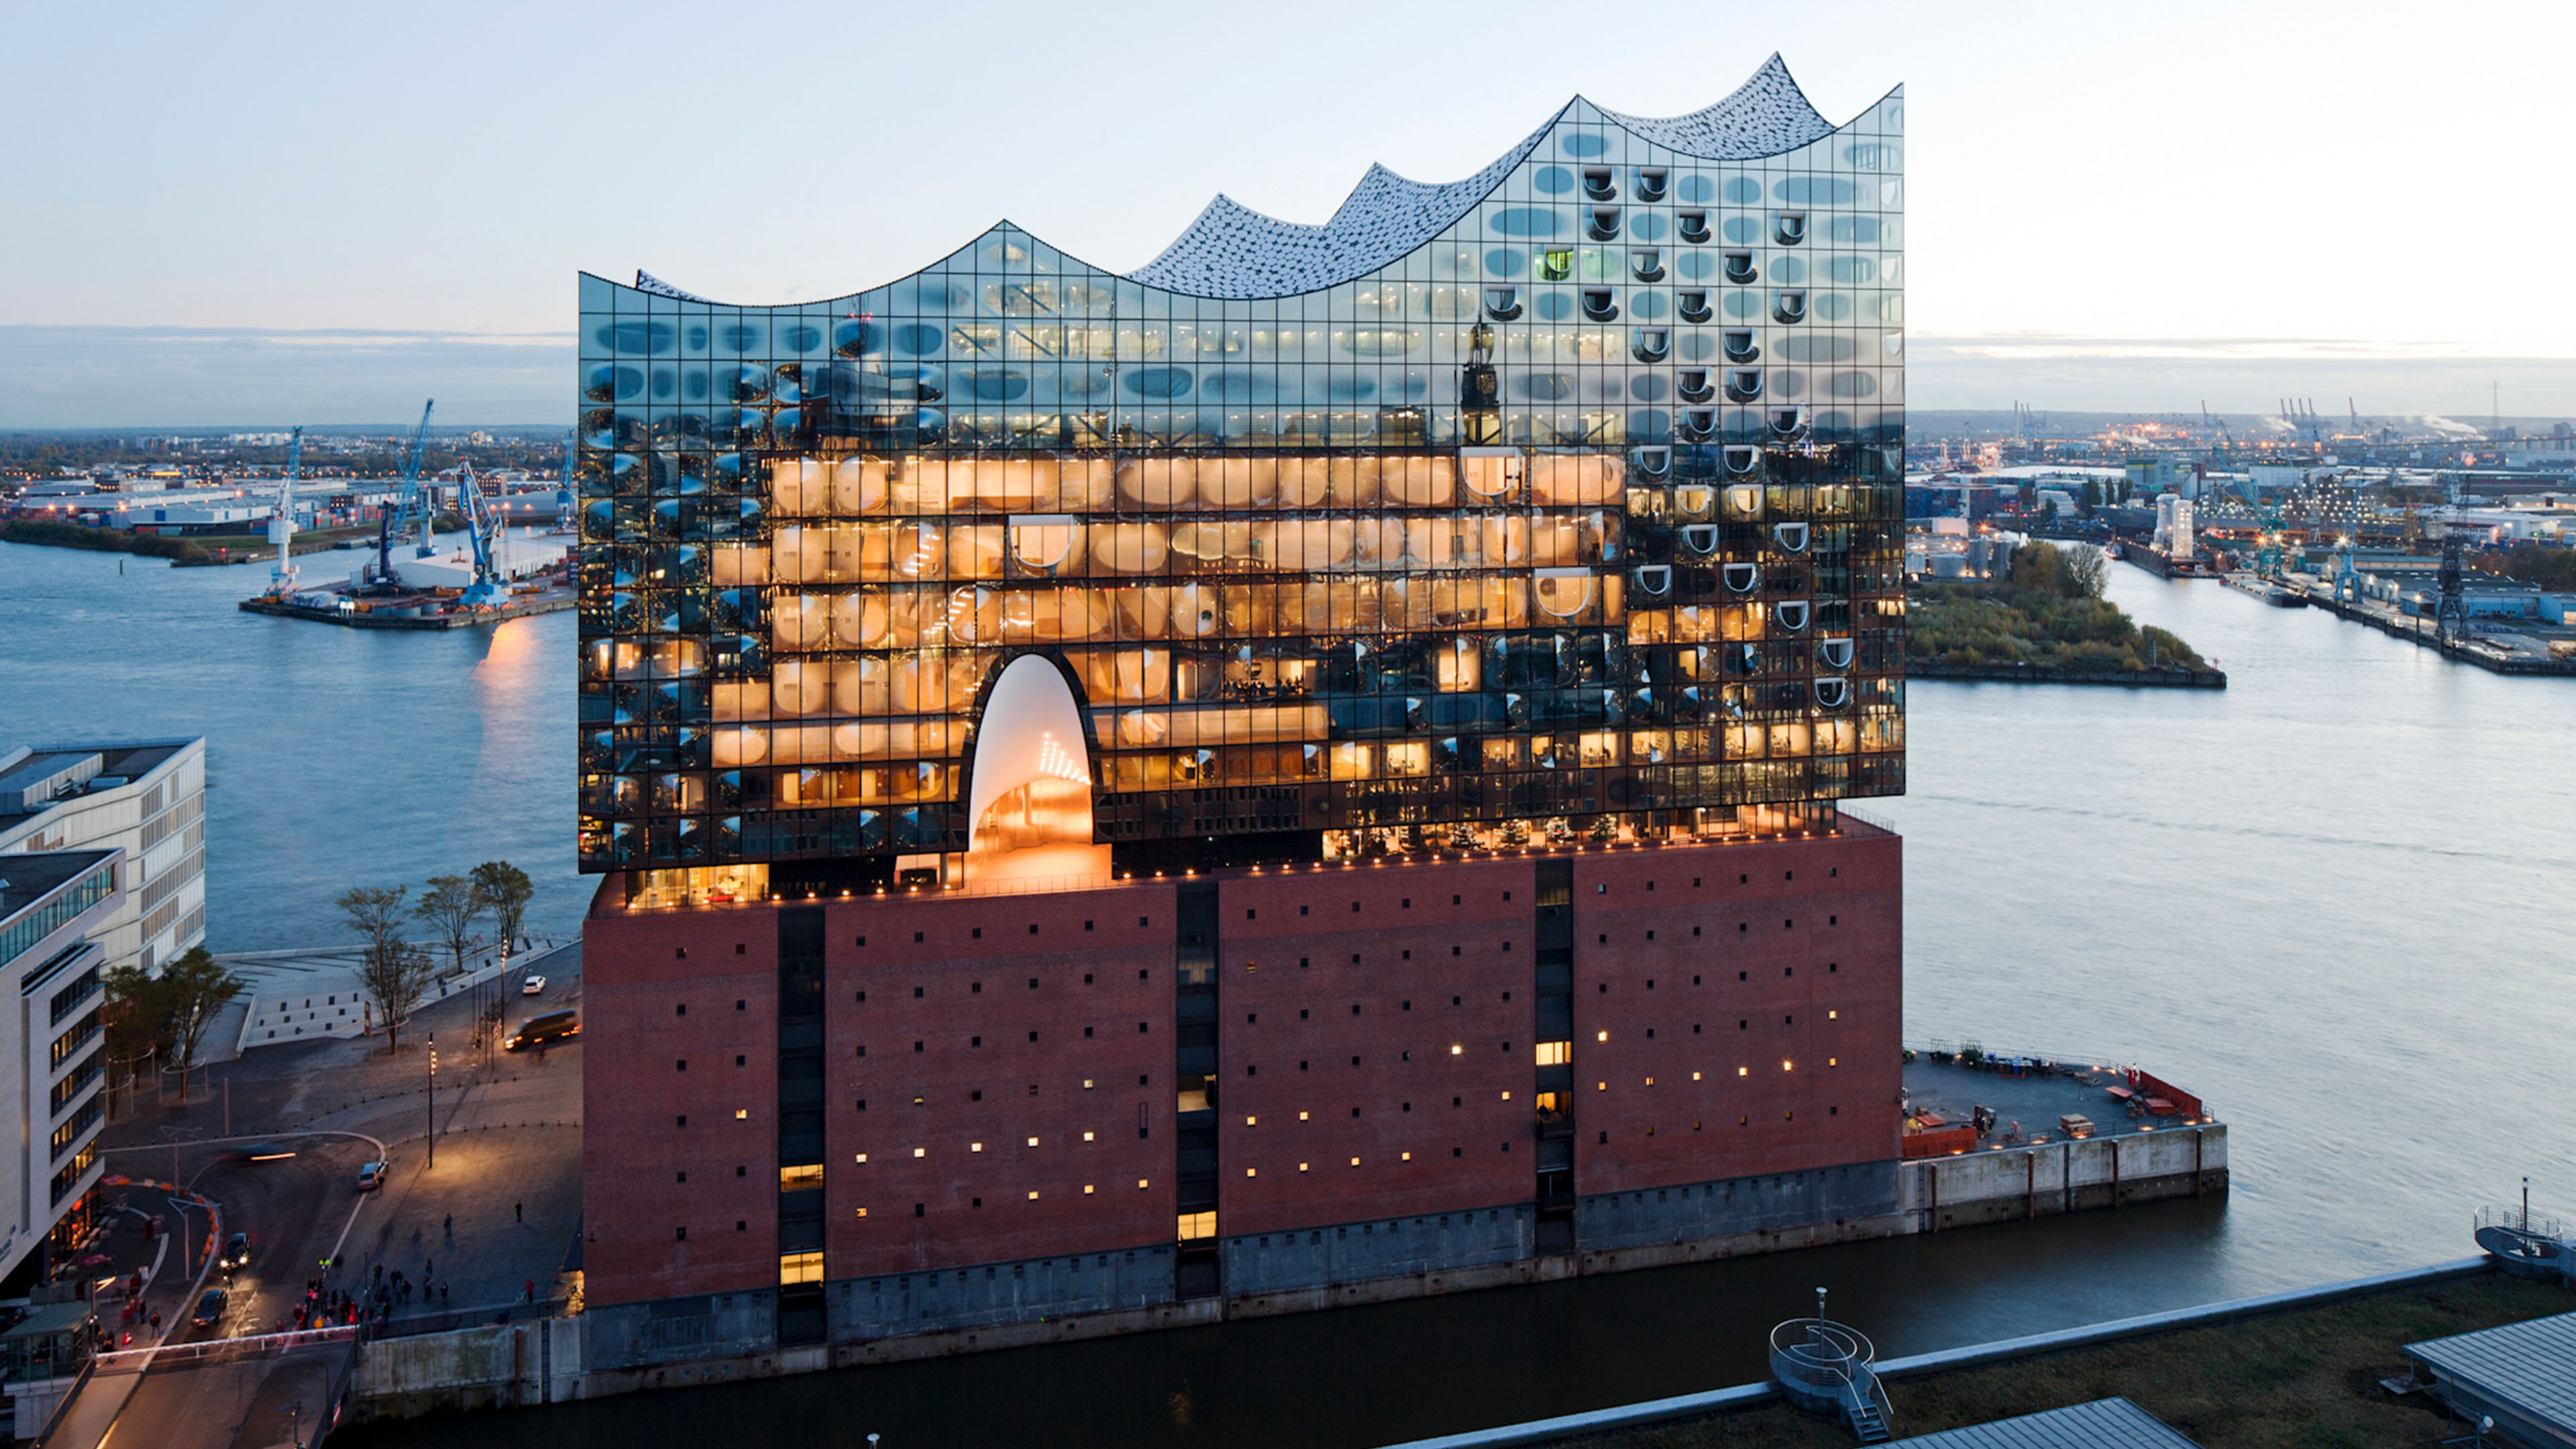 fsb elbphilharmonie hamburg. Black Bedroom Furniture Sets. Home Design Ideas